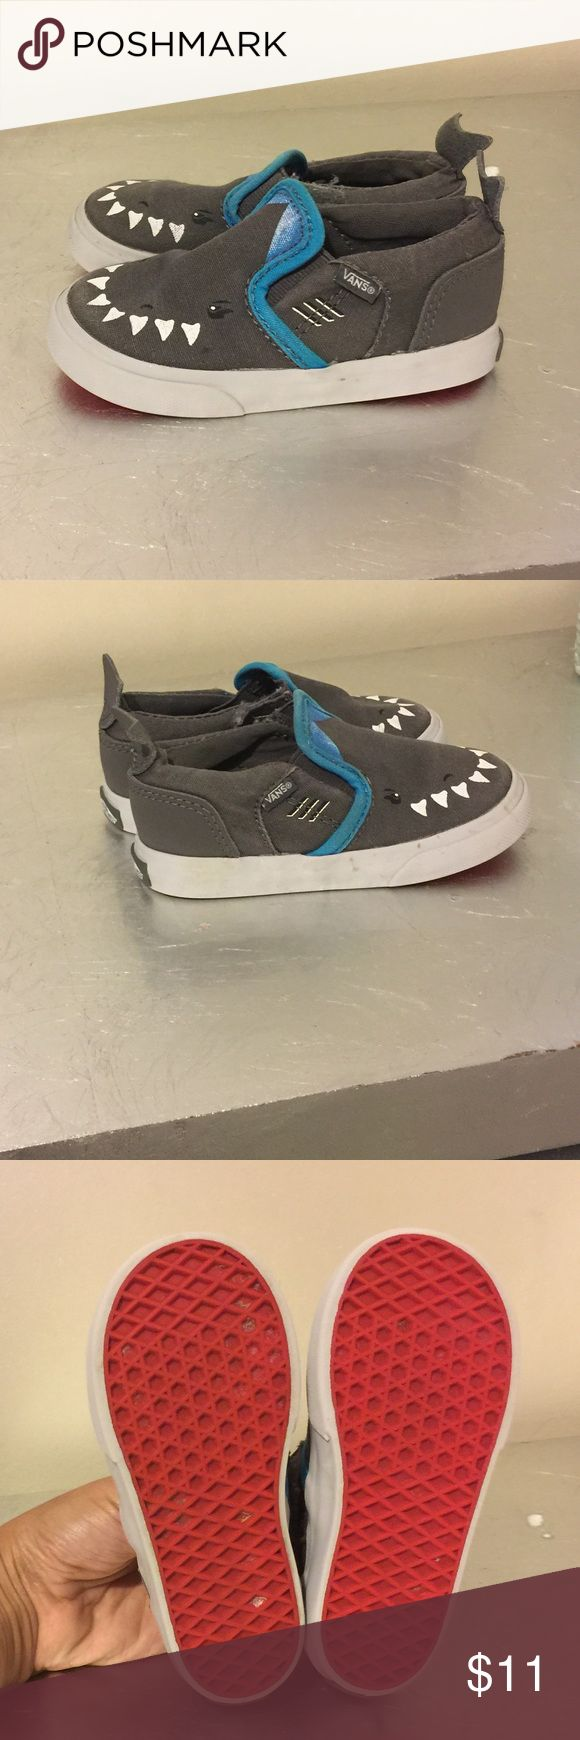 Vans for boy toddler Good condition. My son loved these. Vans Shoes Sneakers